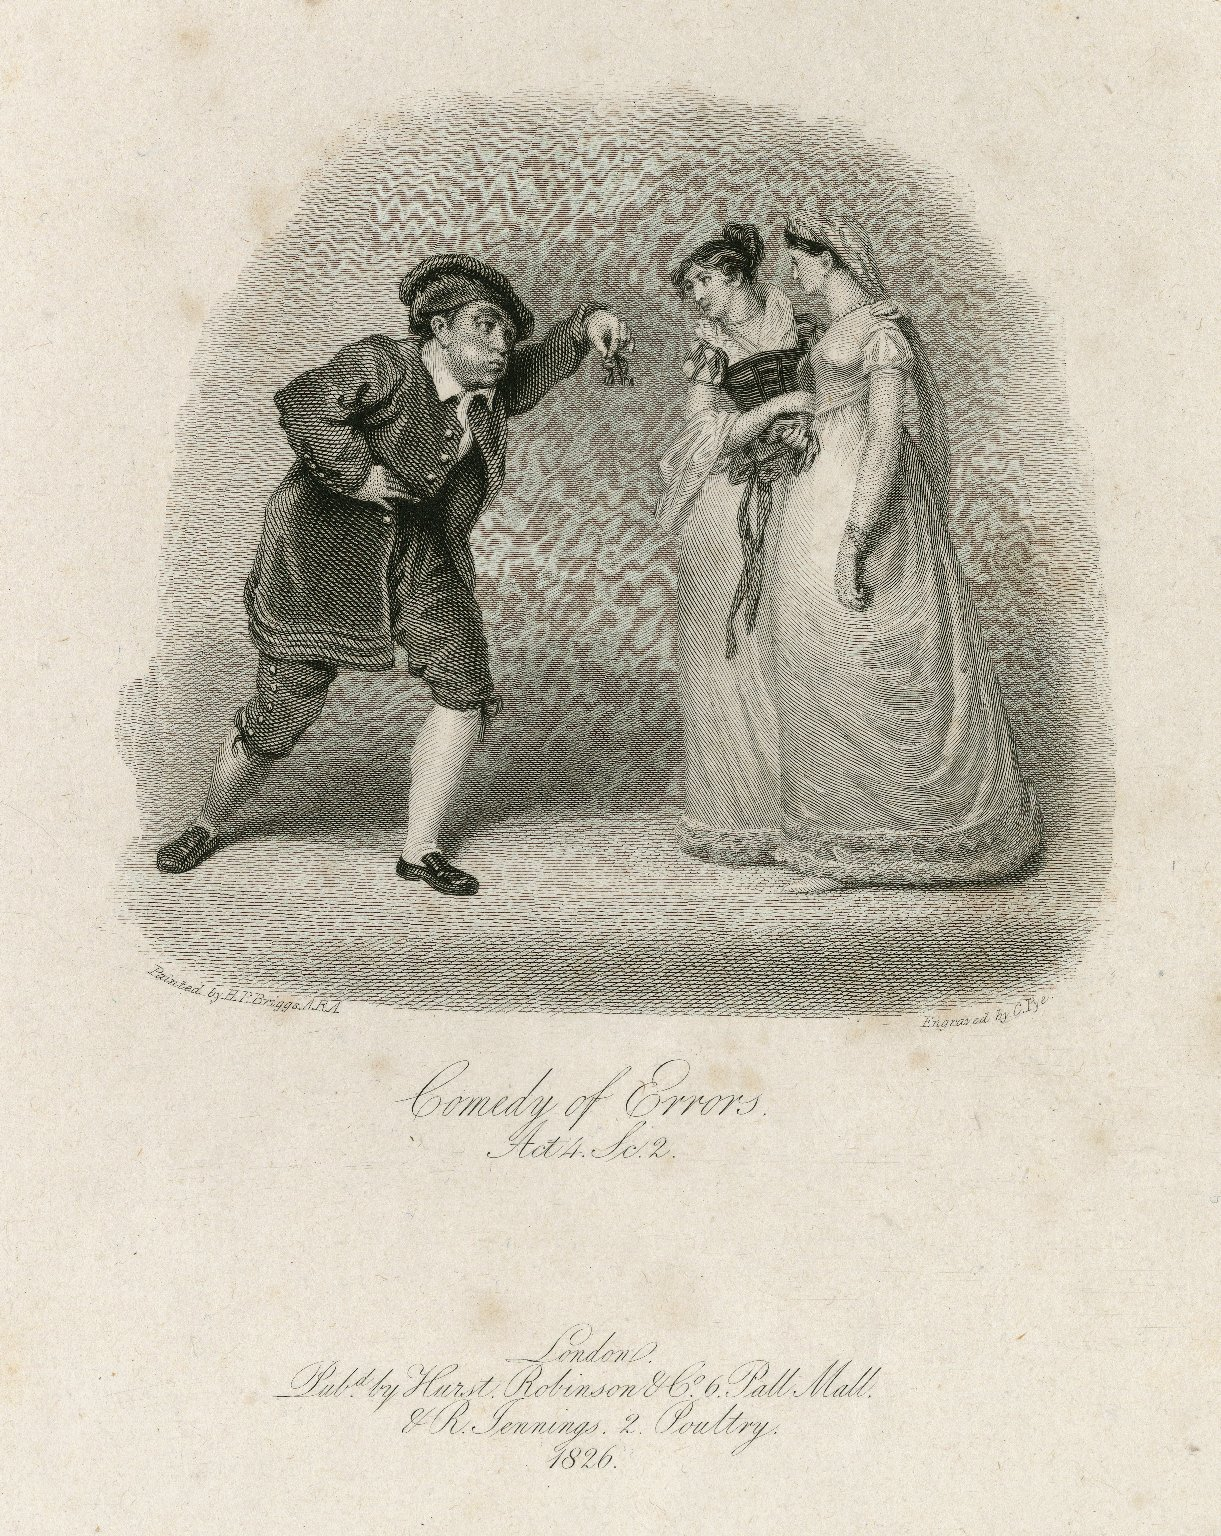 Comedy of errors, act 4, sc. 2 [graphic] / painted by H.P. Briggs, A.R.A. ; engraved by C. Pye.